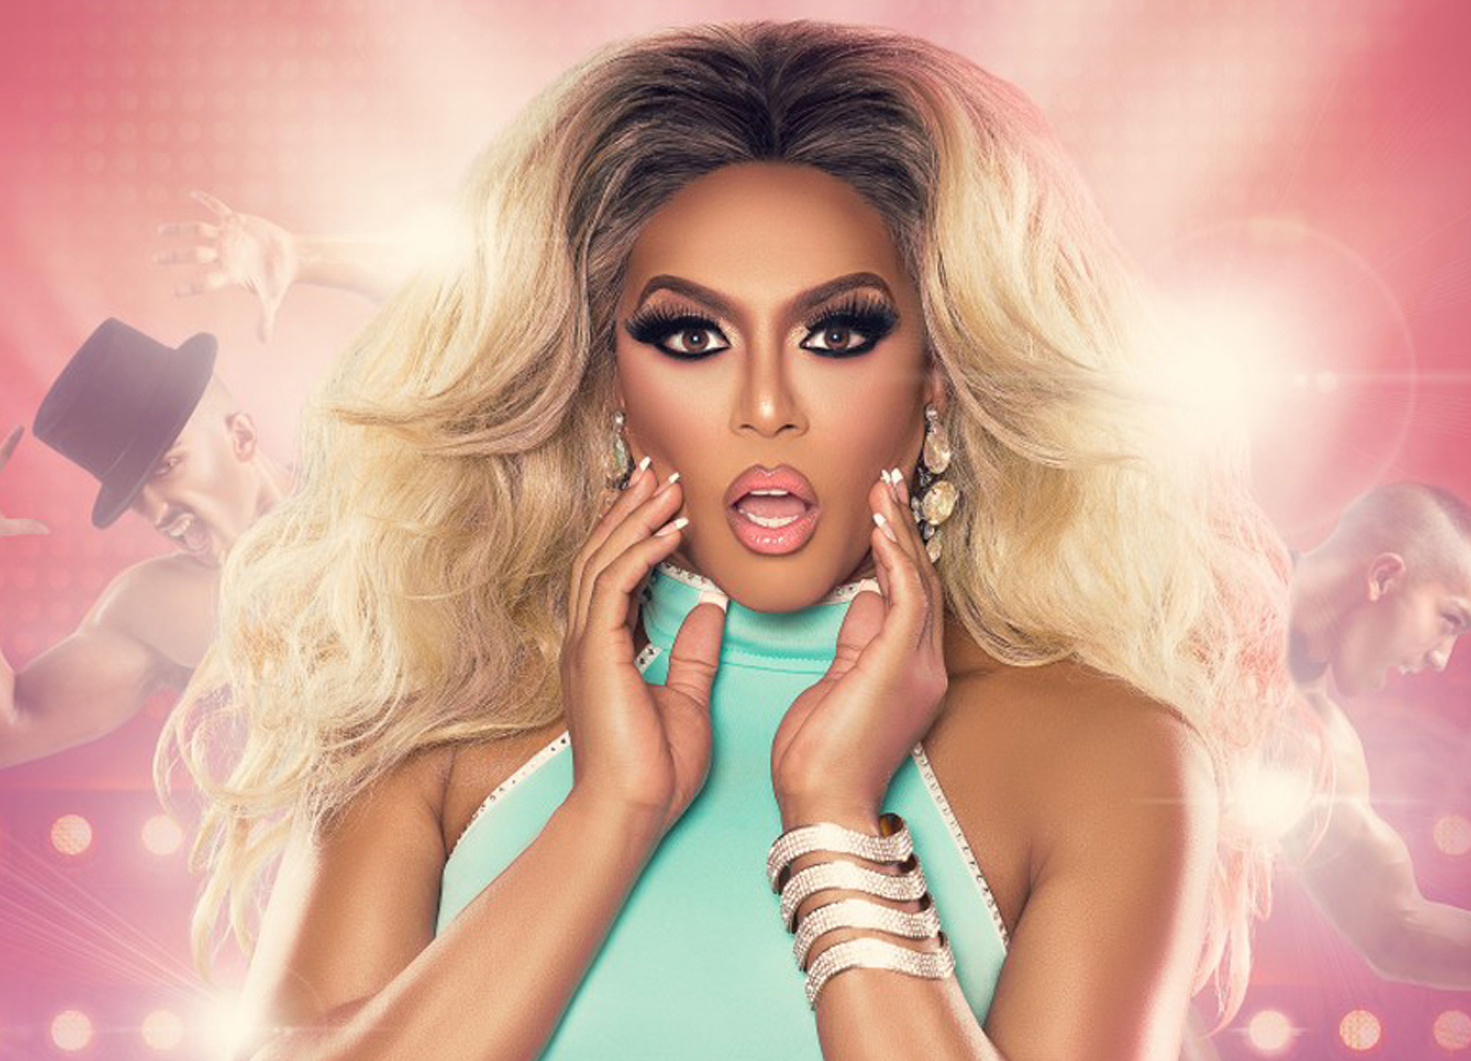 shangela_New Website Image template